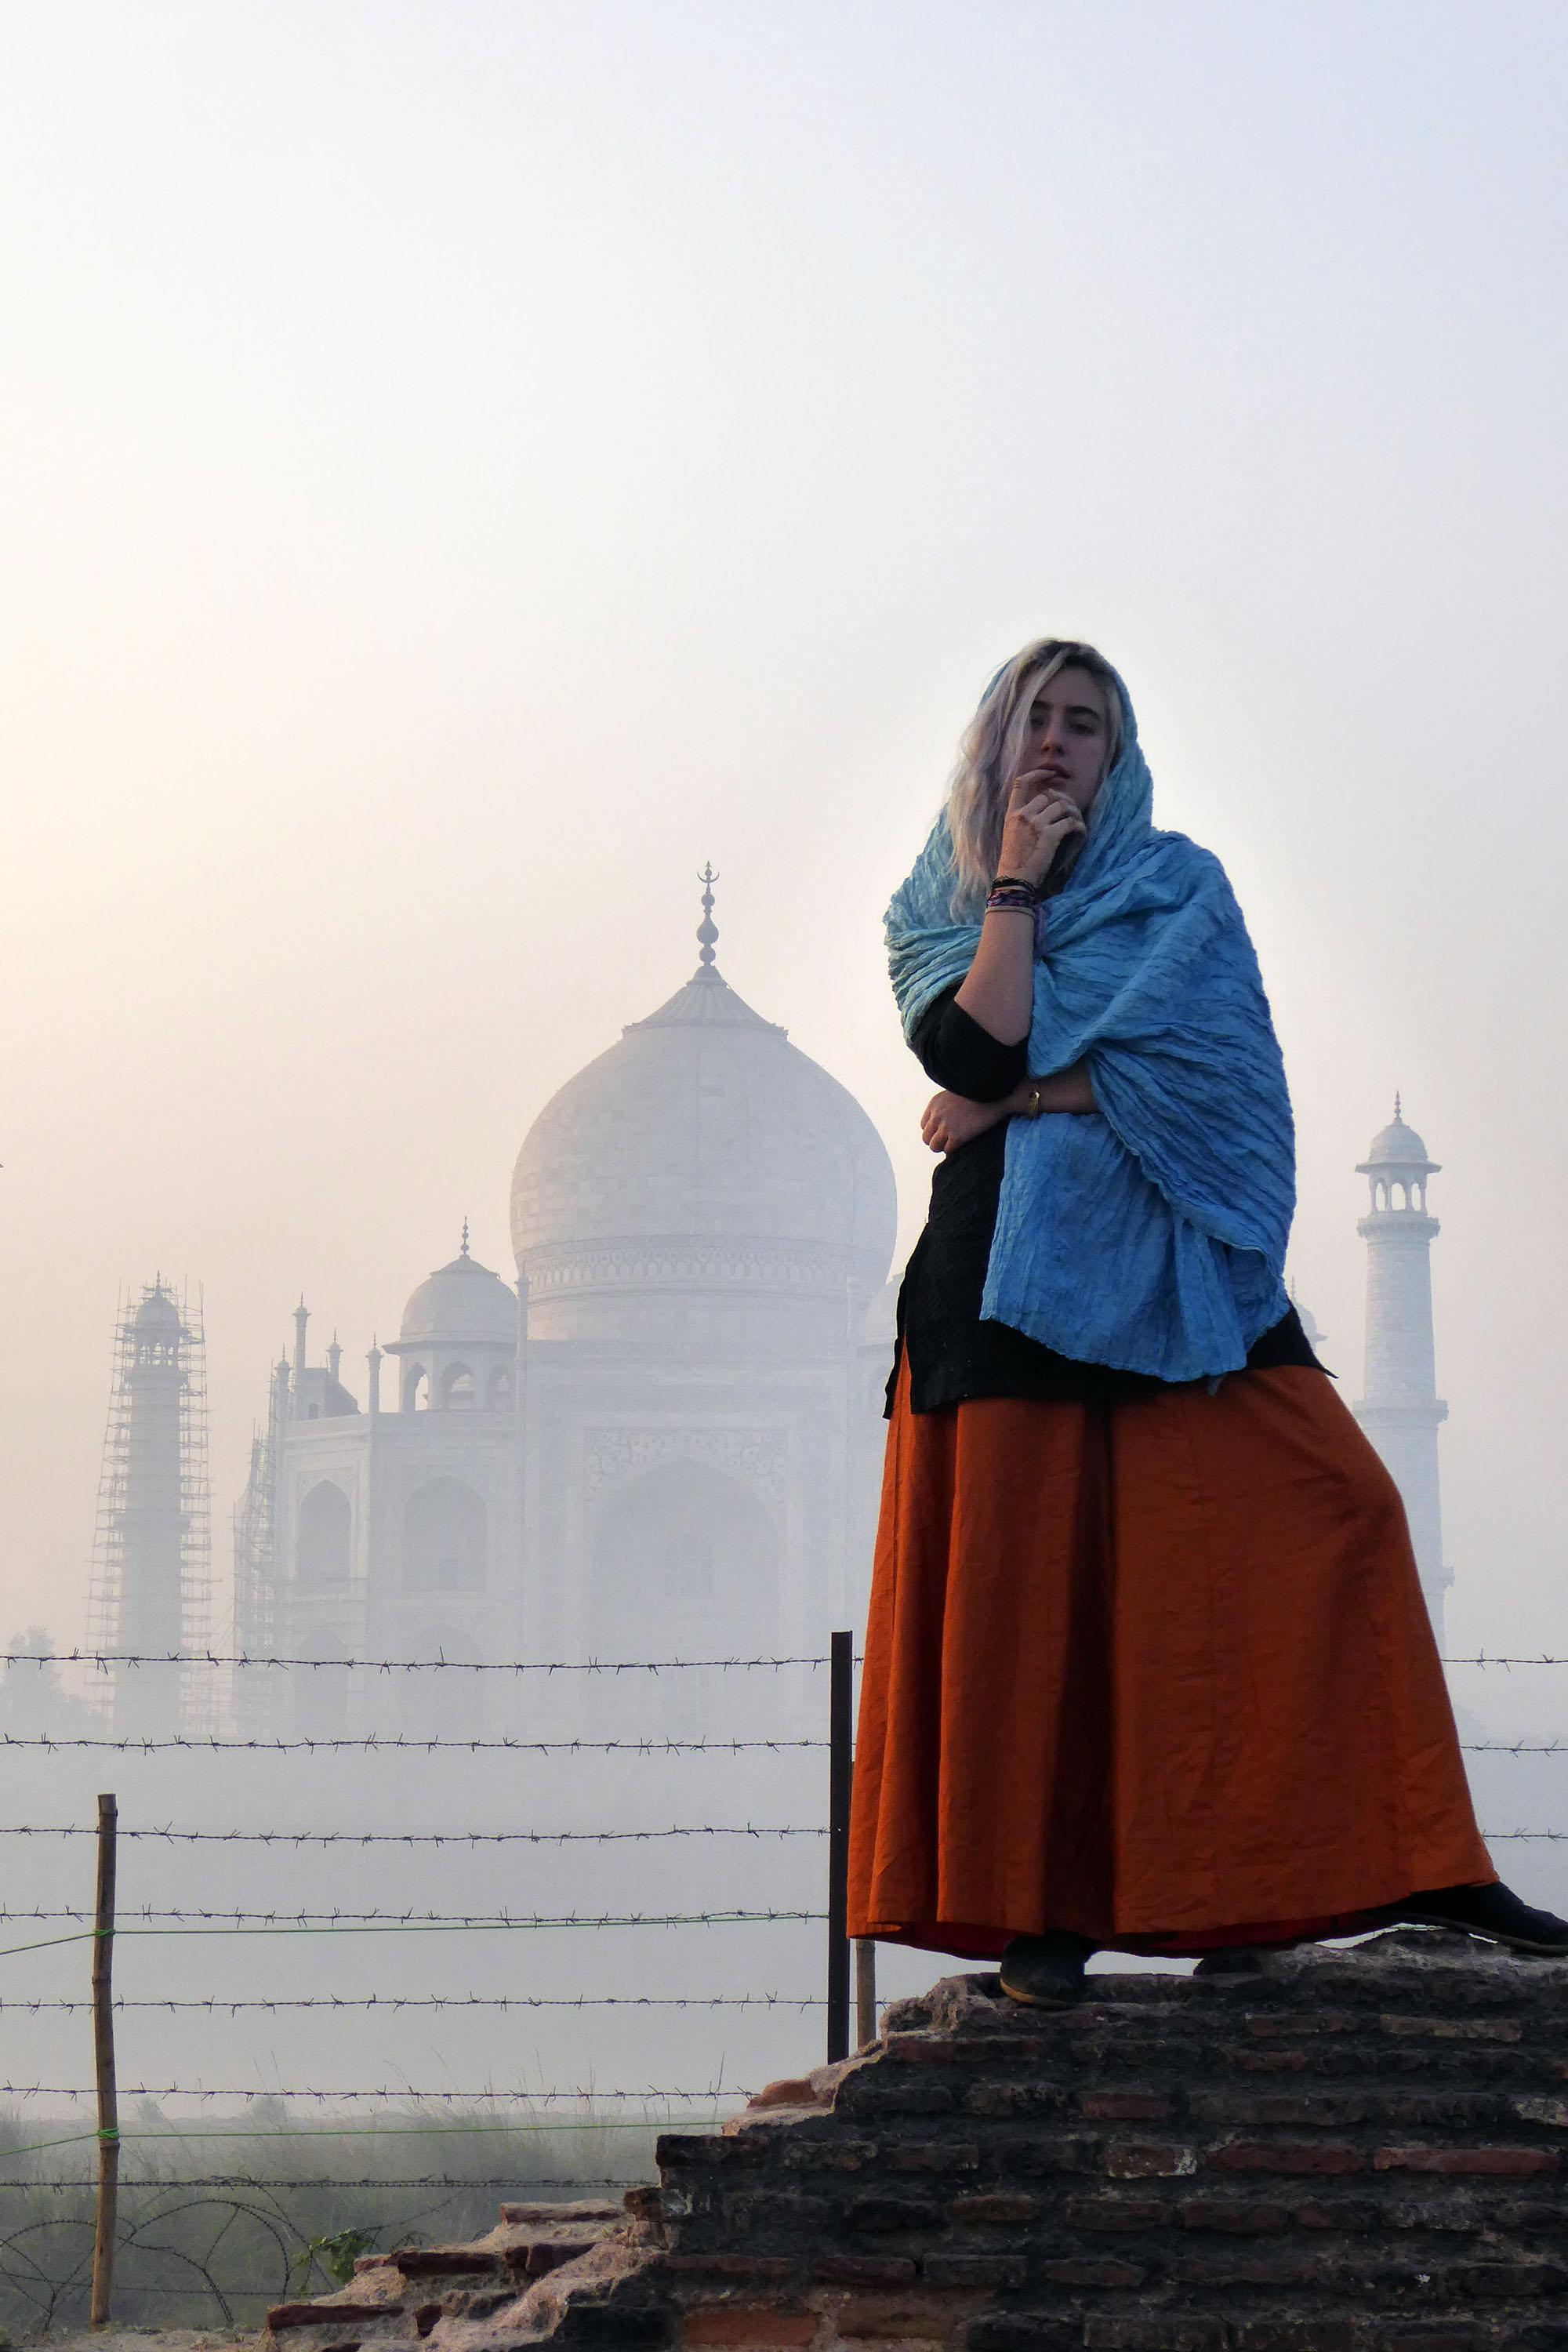 Rose Shulman-Litwin '18 poses in front of the Taj Majal in Agra, India during the Archer Abroad trip to India. All of Shulman-Litwin's previous thoughts on India were completely changed once she arrived.